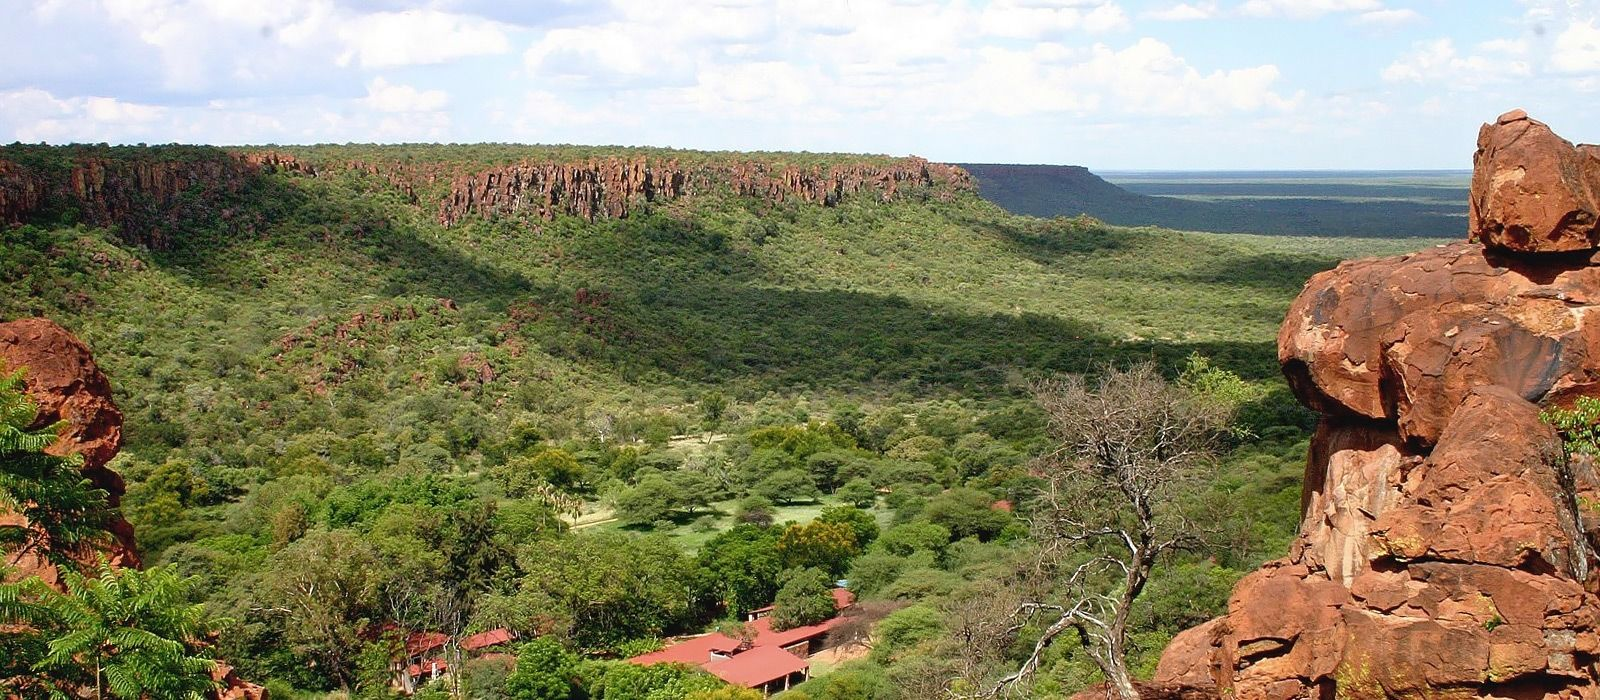 Destination Waterberg Plateau Namibia